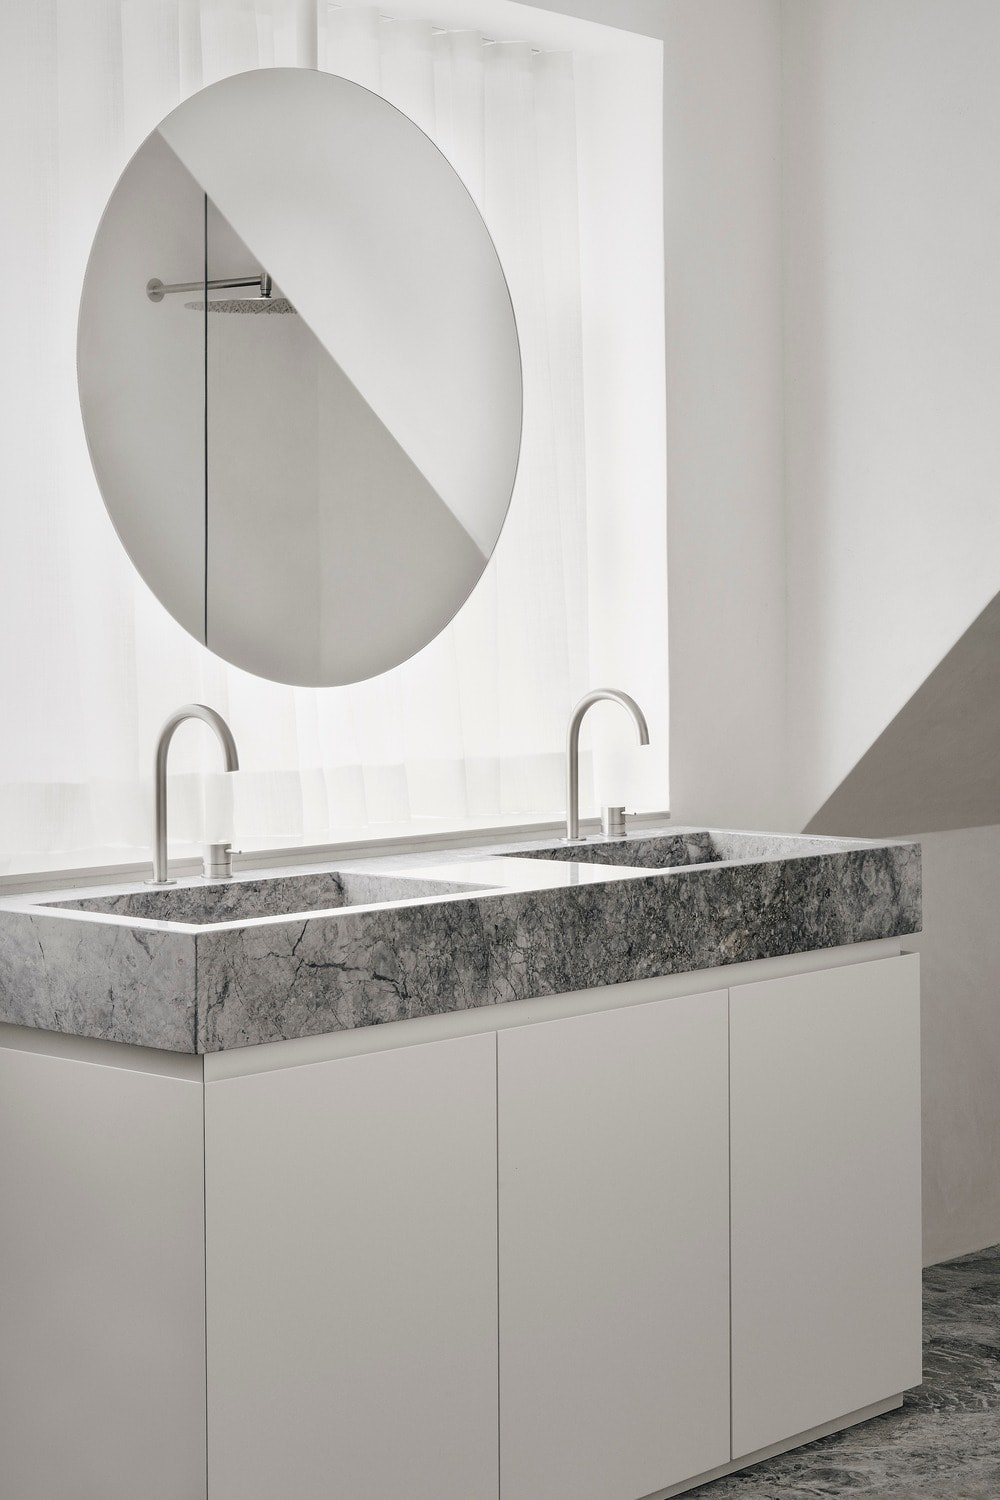 This is a look at the bathroom's two-sink vanity with a gray marble countertop, white cabinetry and a round mirror.